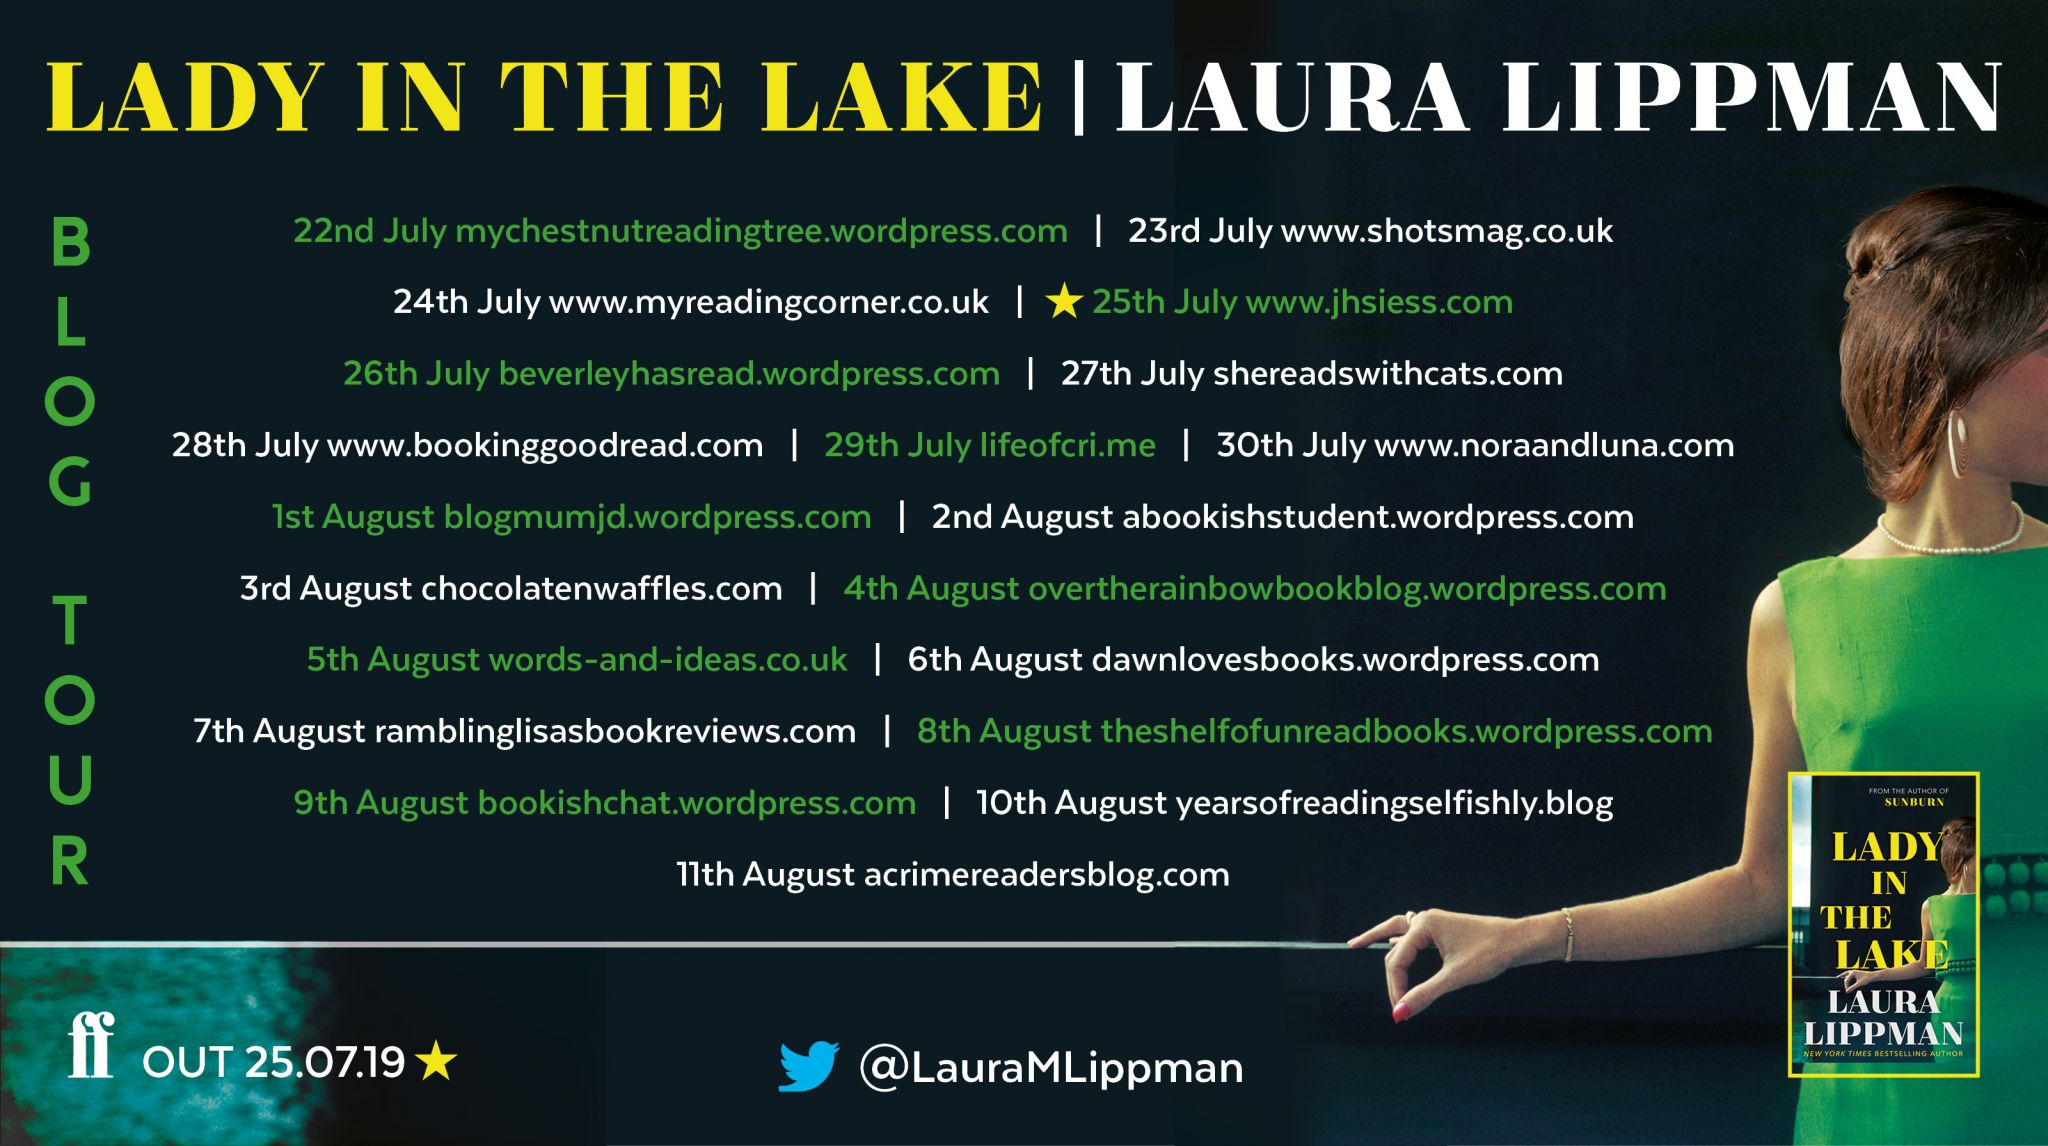 Lady in the Lake – Laura Lippman